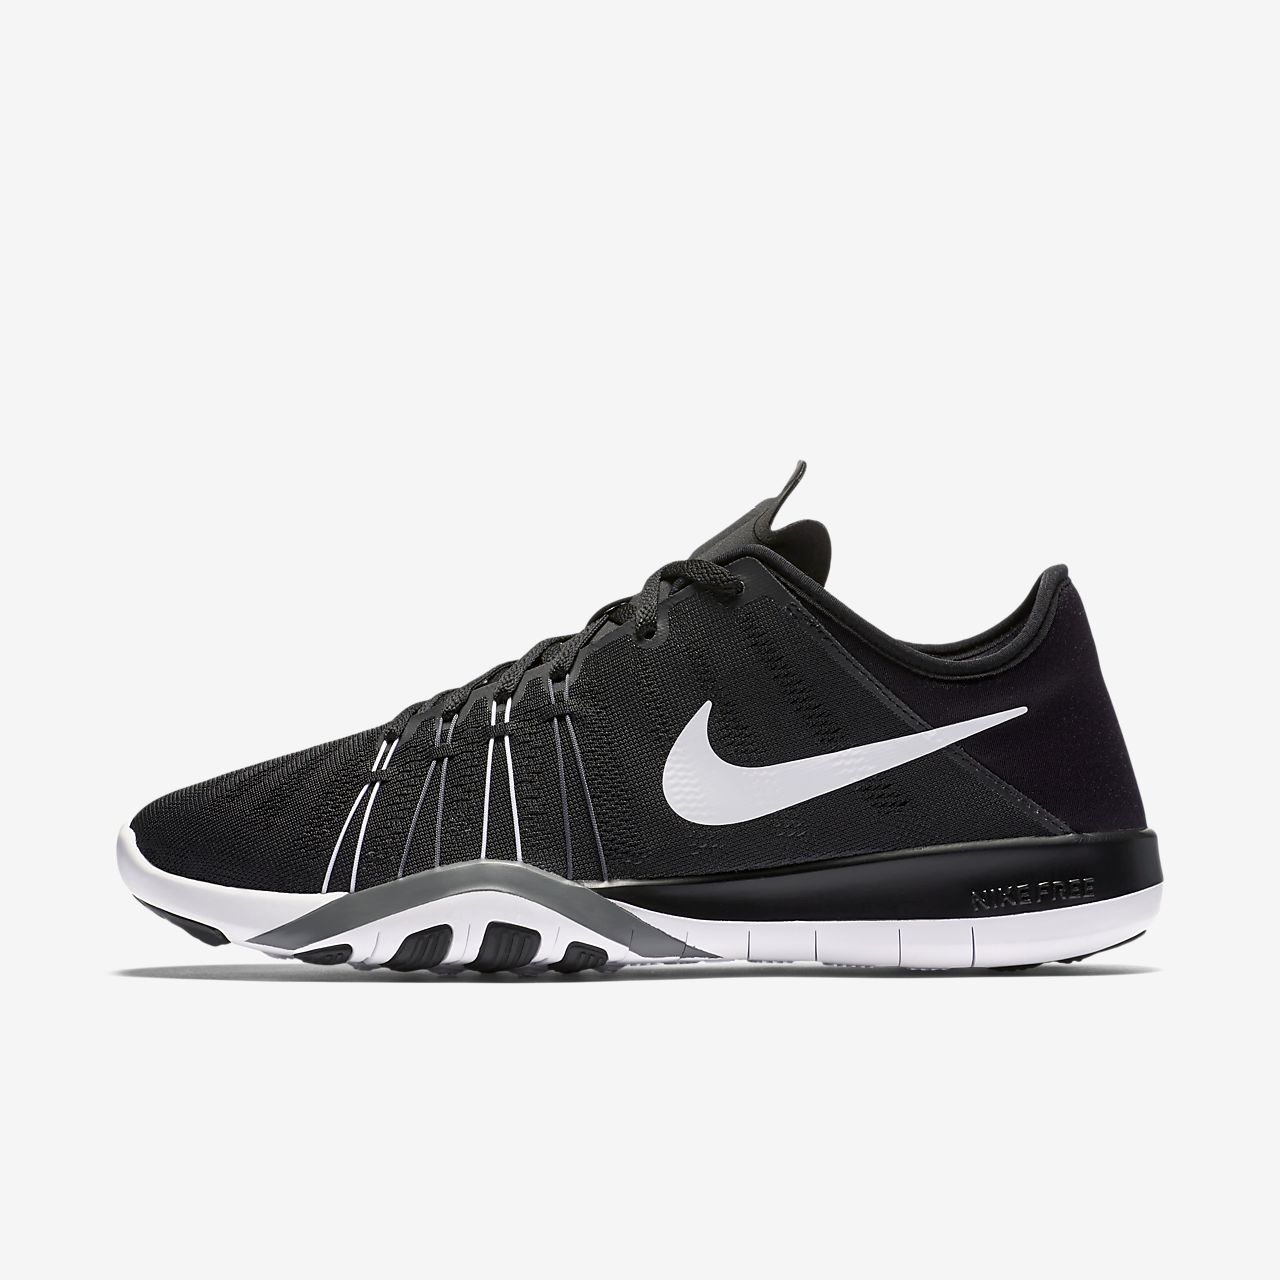 nike free run 6.0 black and white market